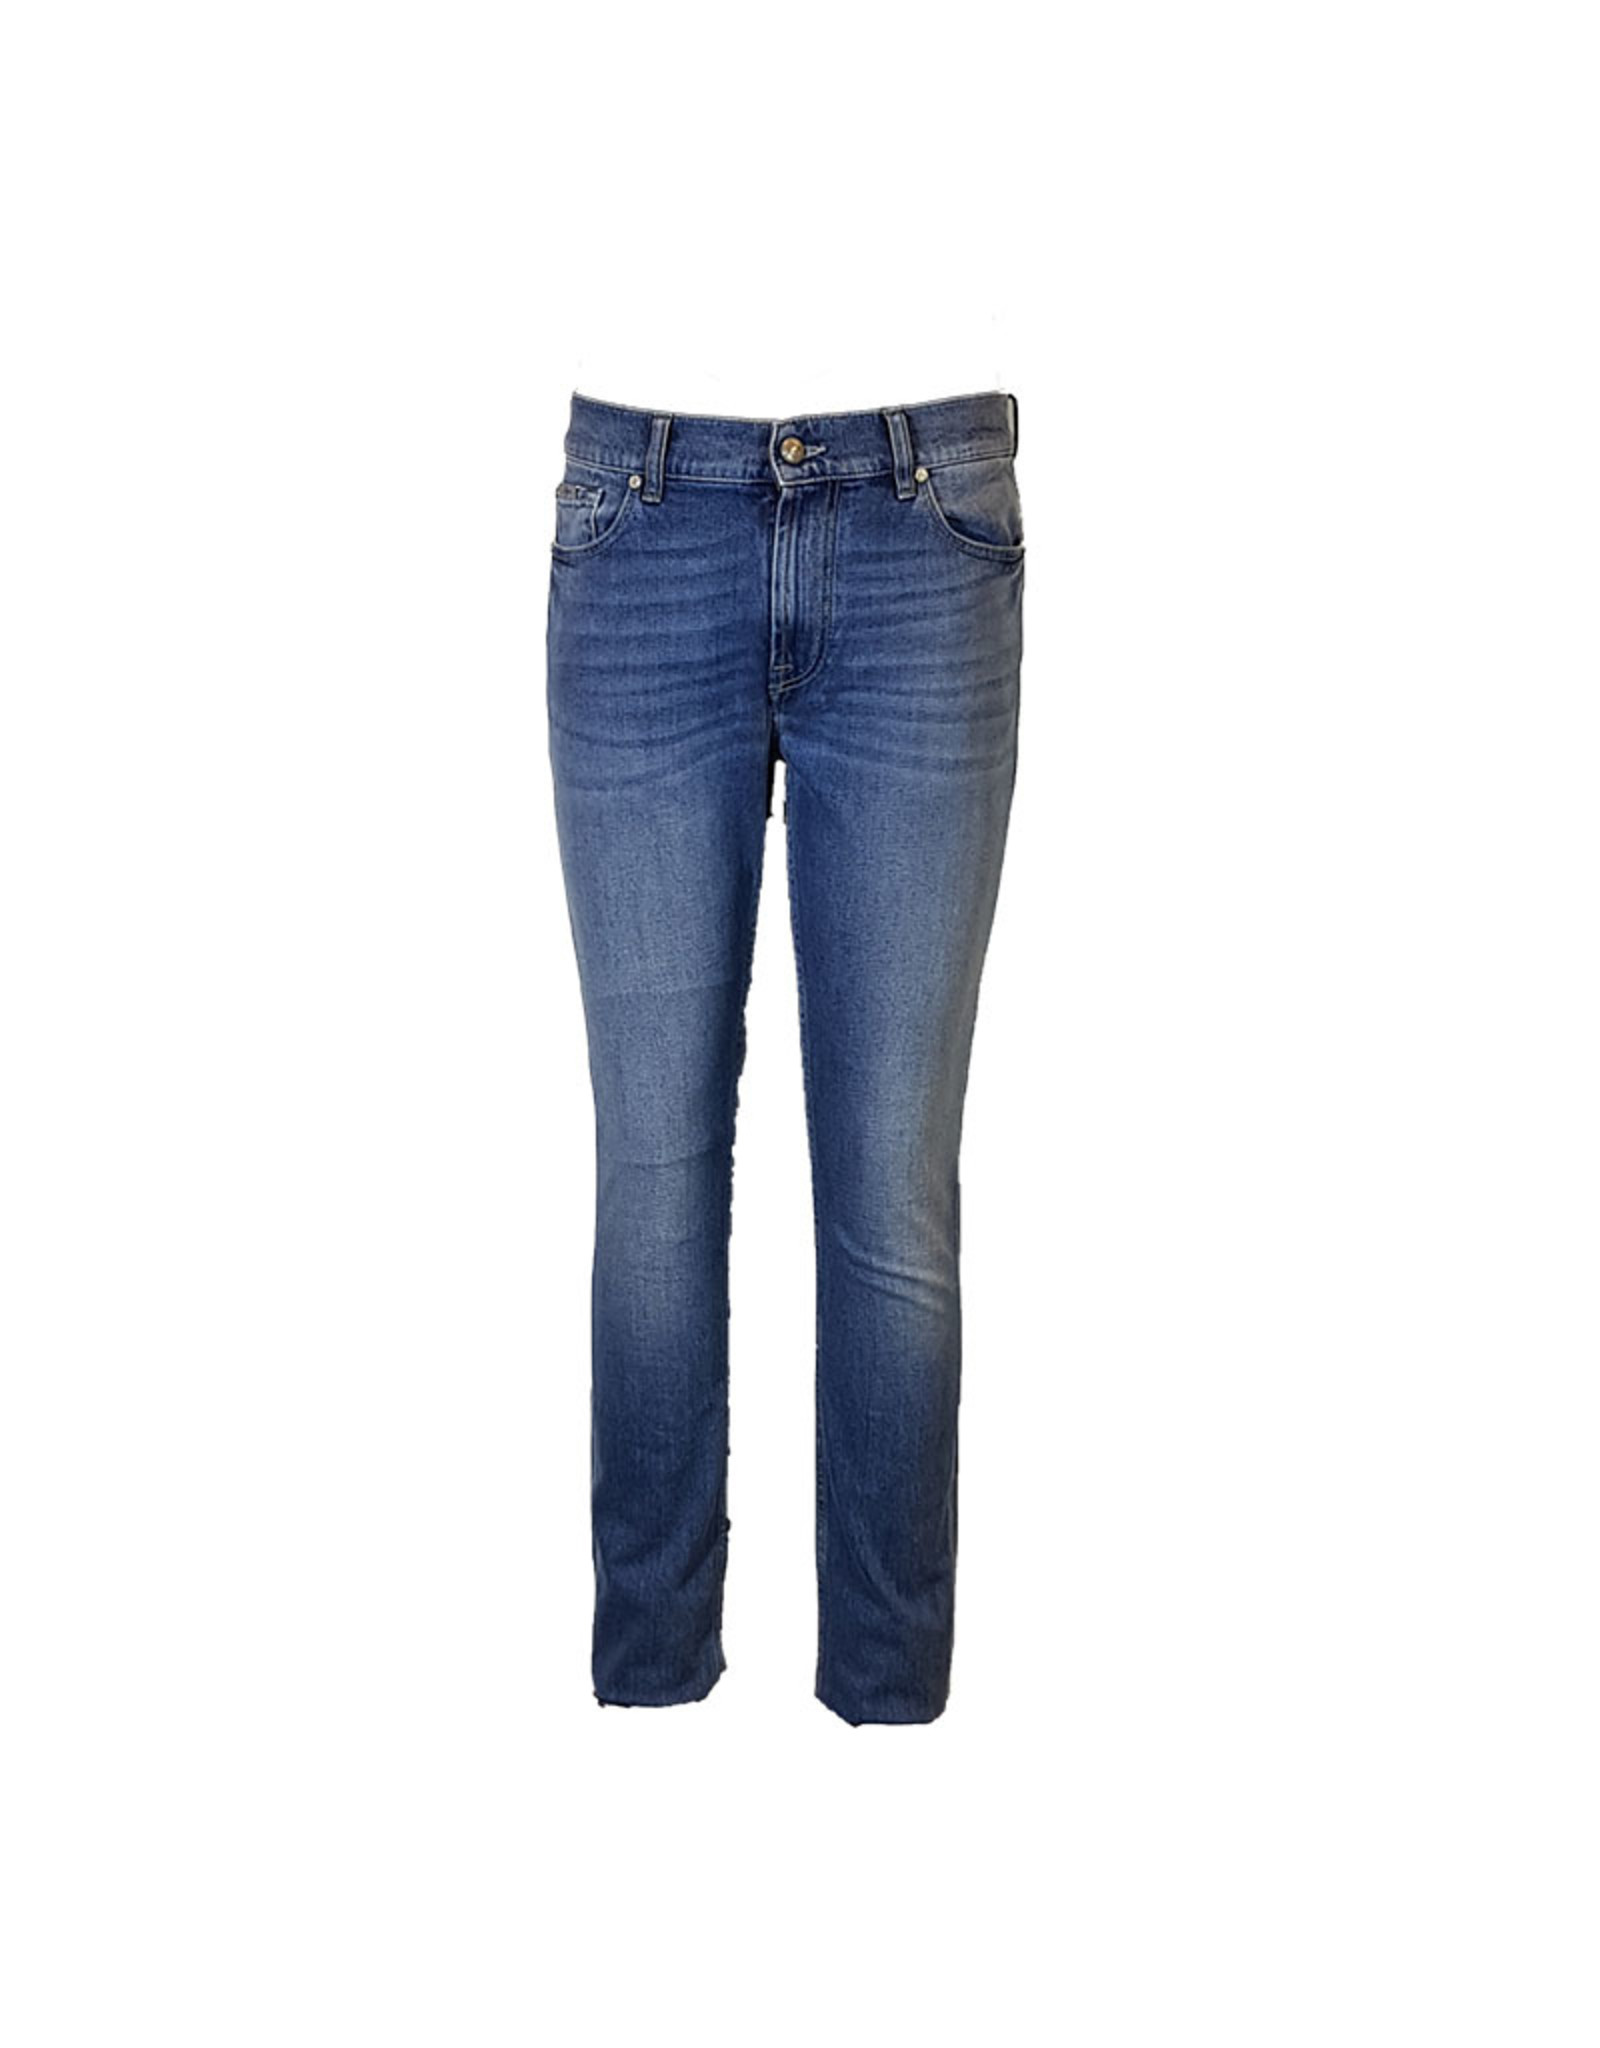 7 For All Mankind 7FAM jeans blauw Ronnie SD4L39BMB